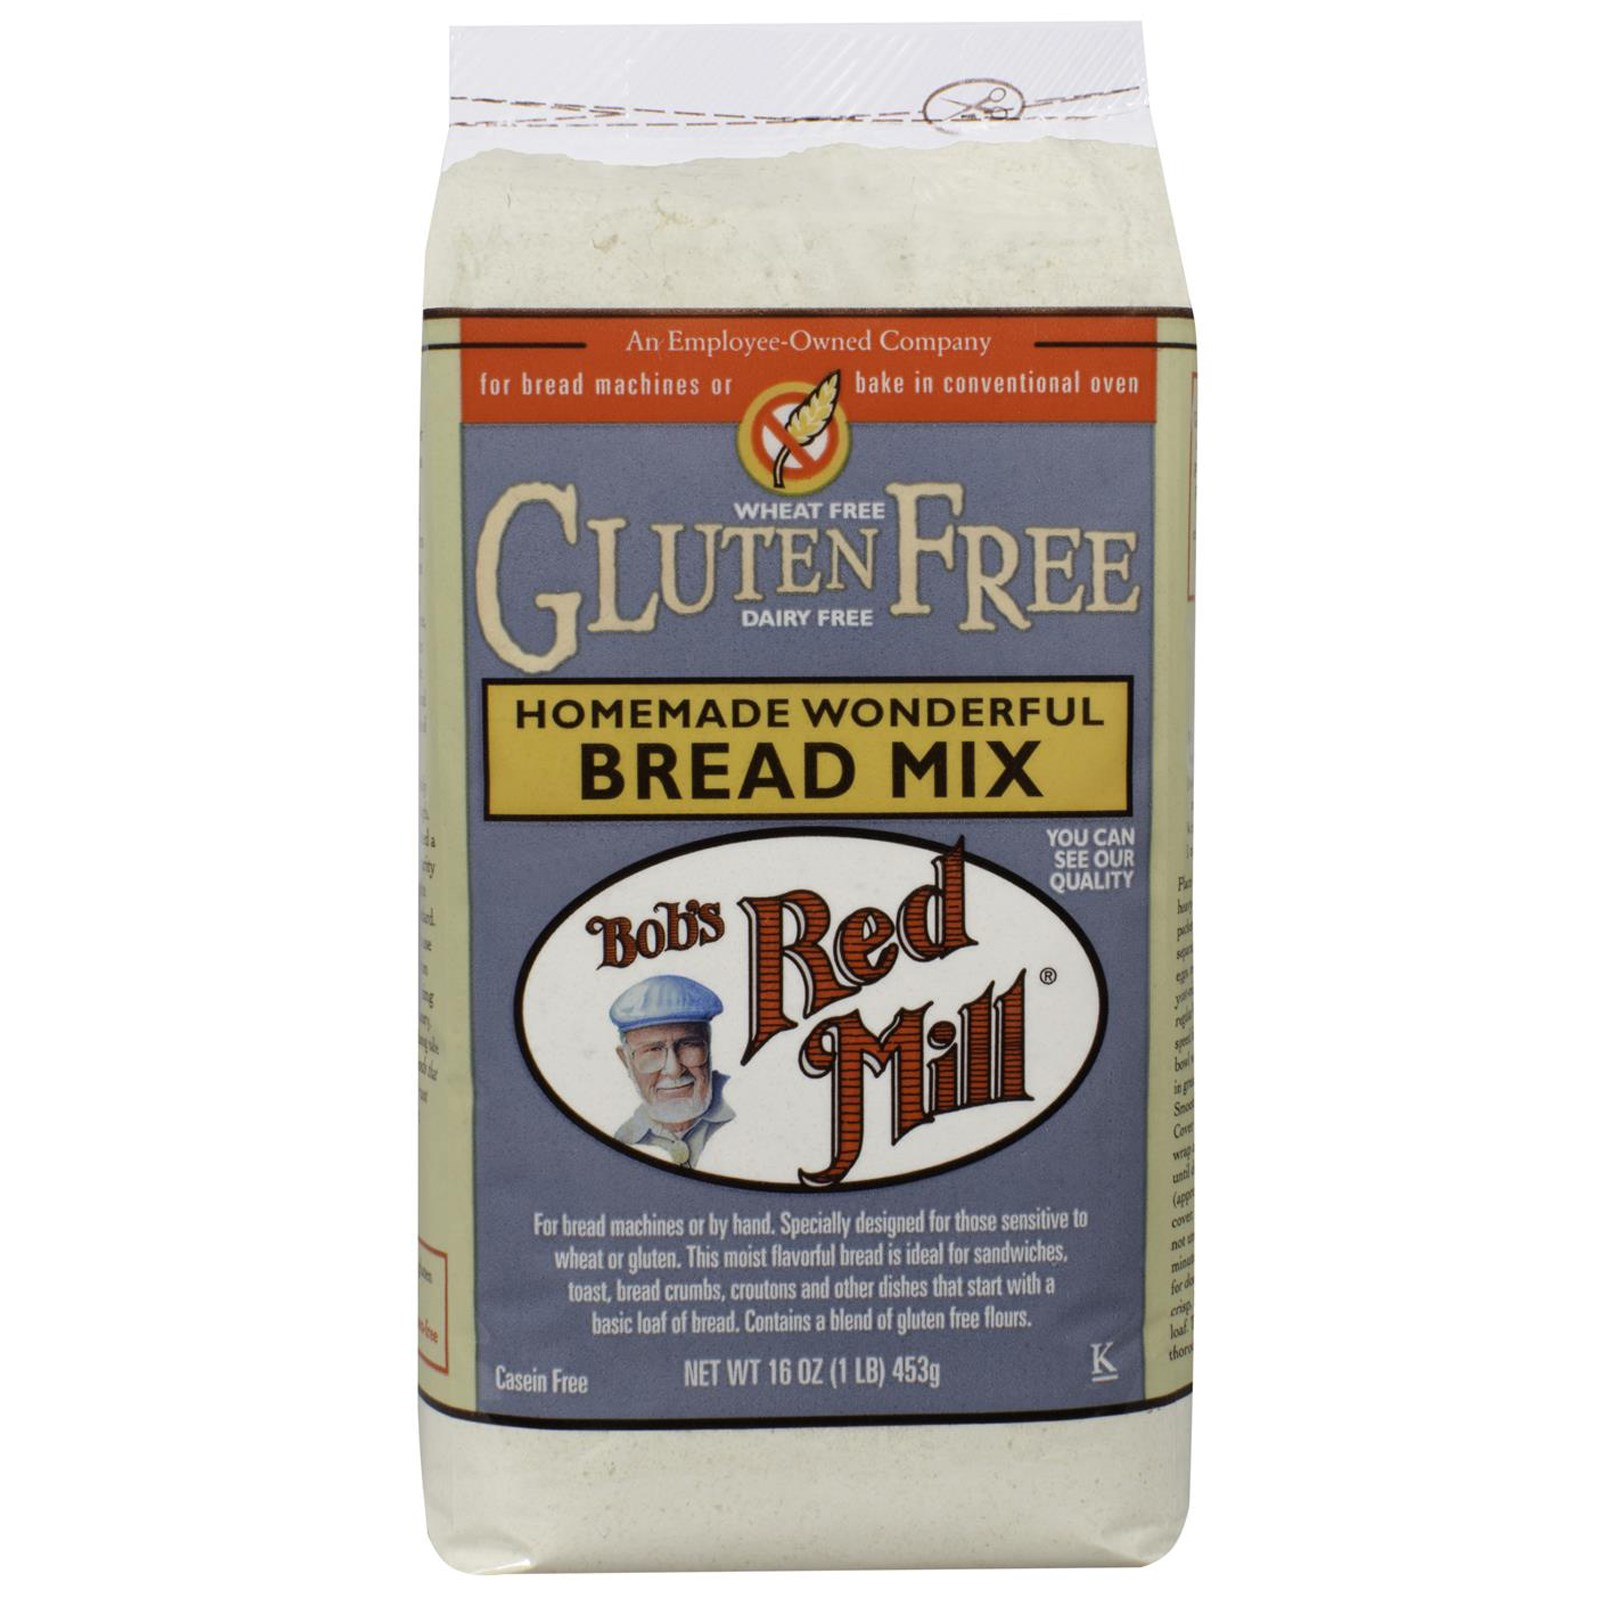 Bob's Red Mill Gluten Free Homemade Wonderful Bread Mix 4/16oz